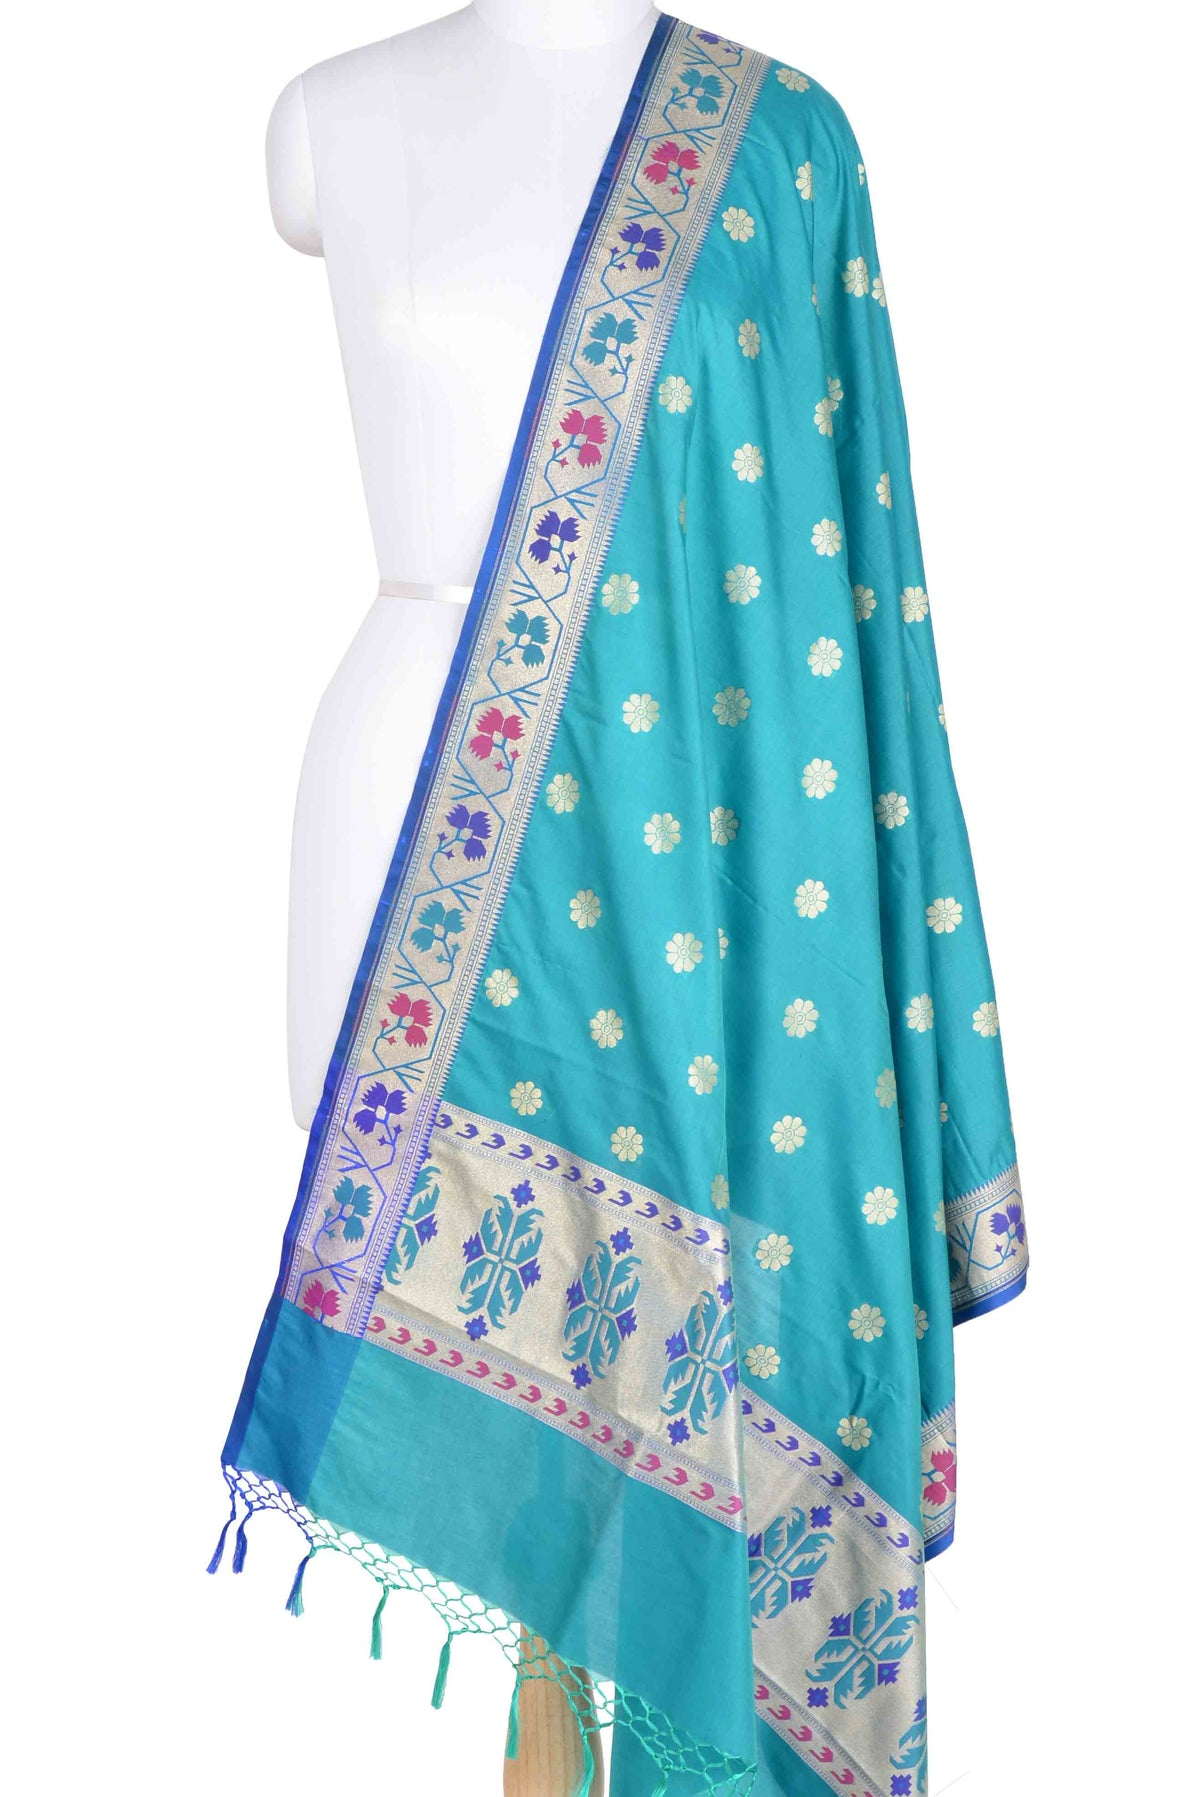 Turquoise Banarasi Dupatta with multi color border with floral motif 1 main